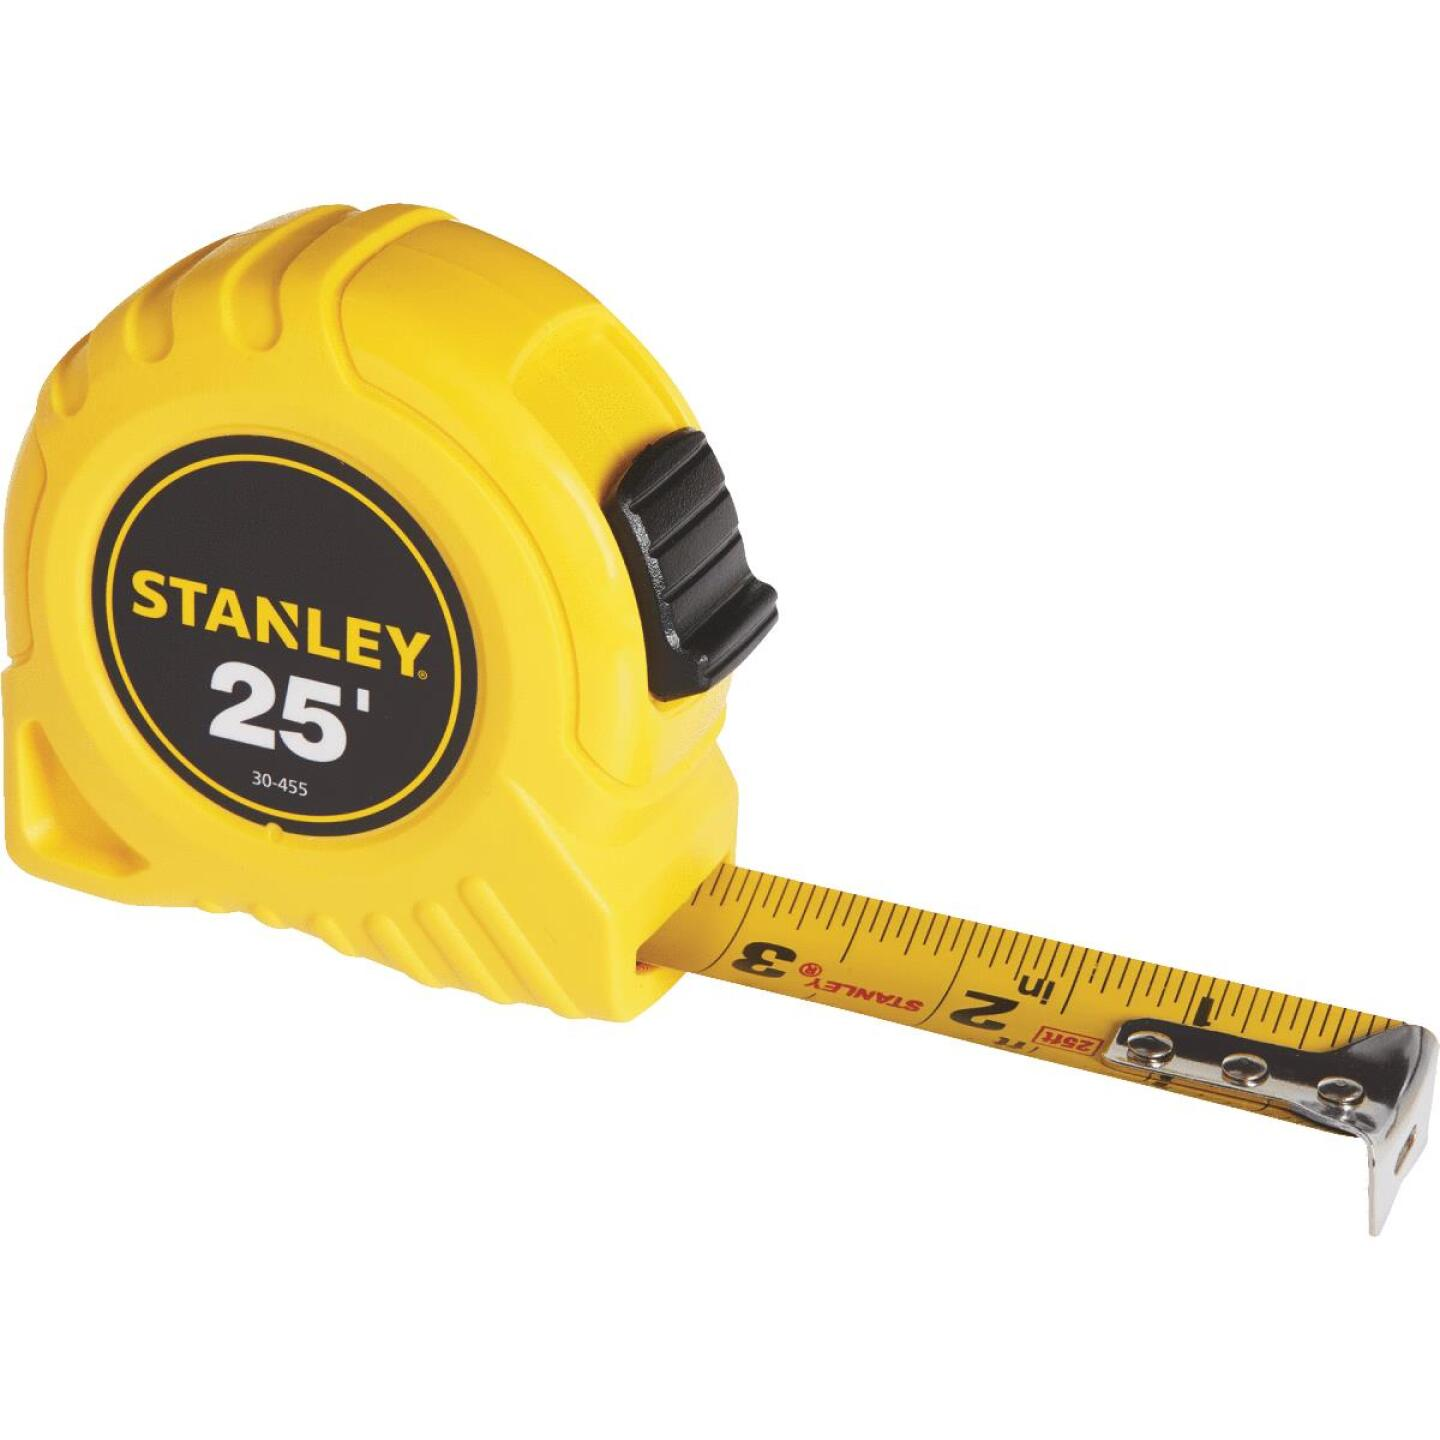 Stanley 25 Ft. Tape Measure Image 1